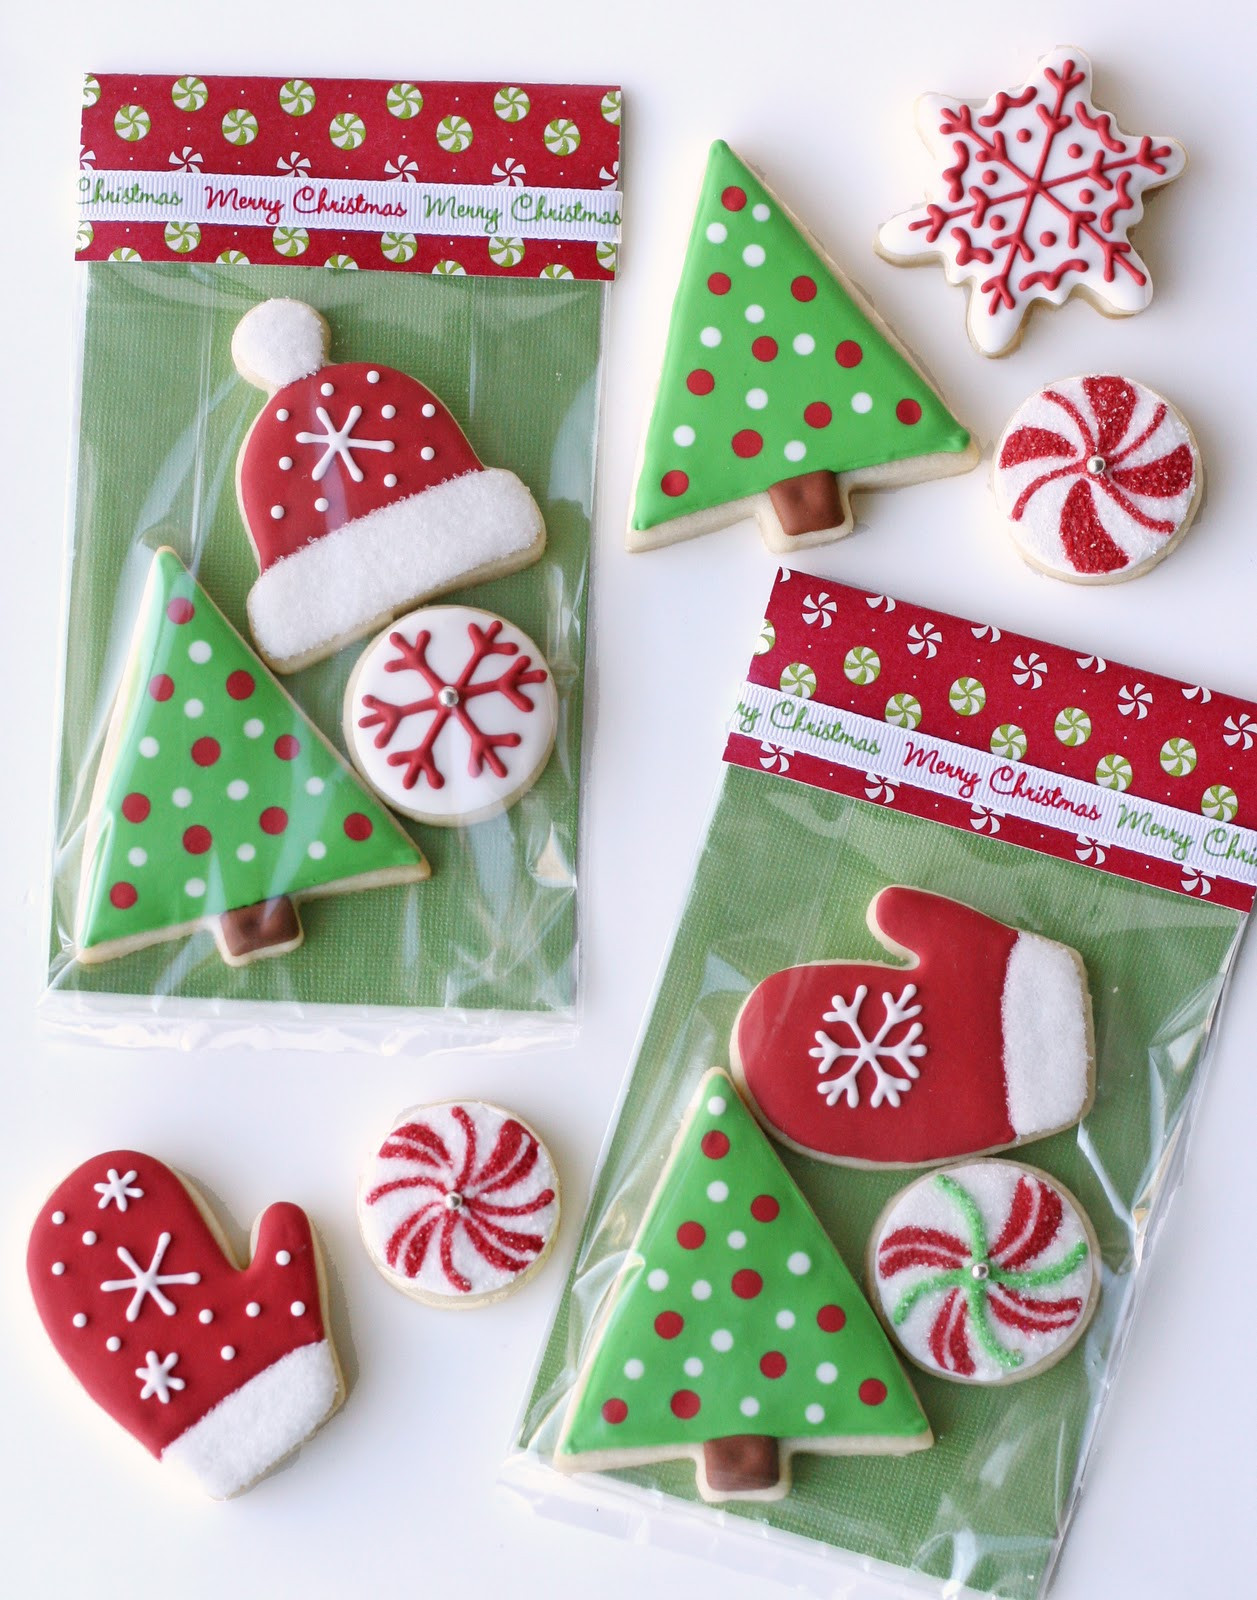 Christmas Cookies Decorating Ideas  Christmas Cookies and Cute Packaging – Glorious Treats